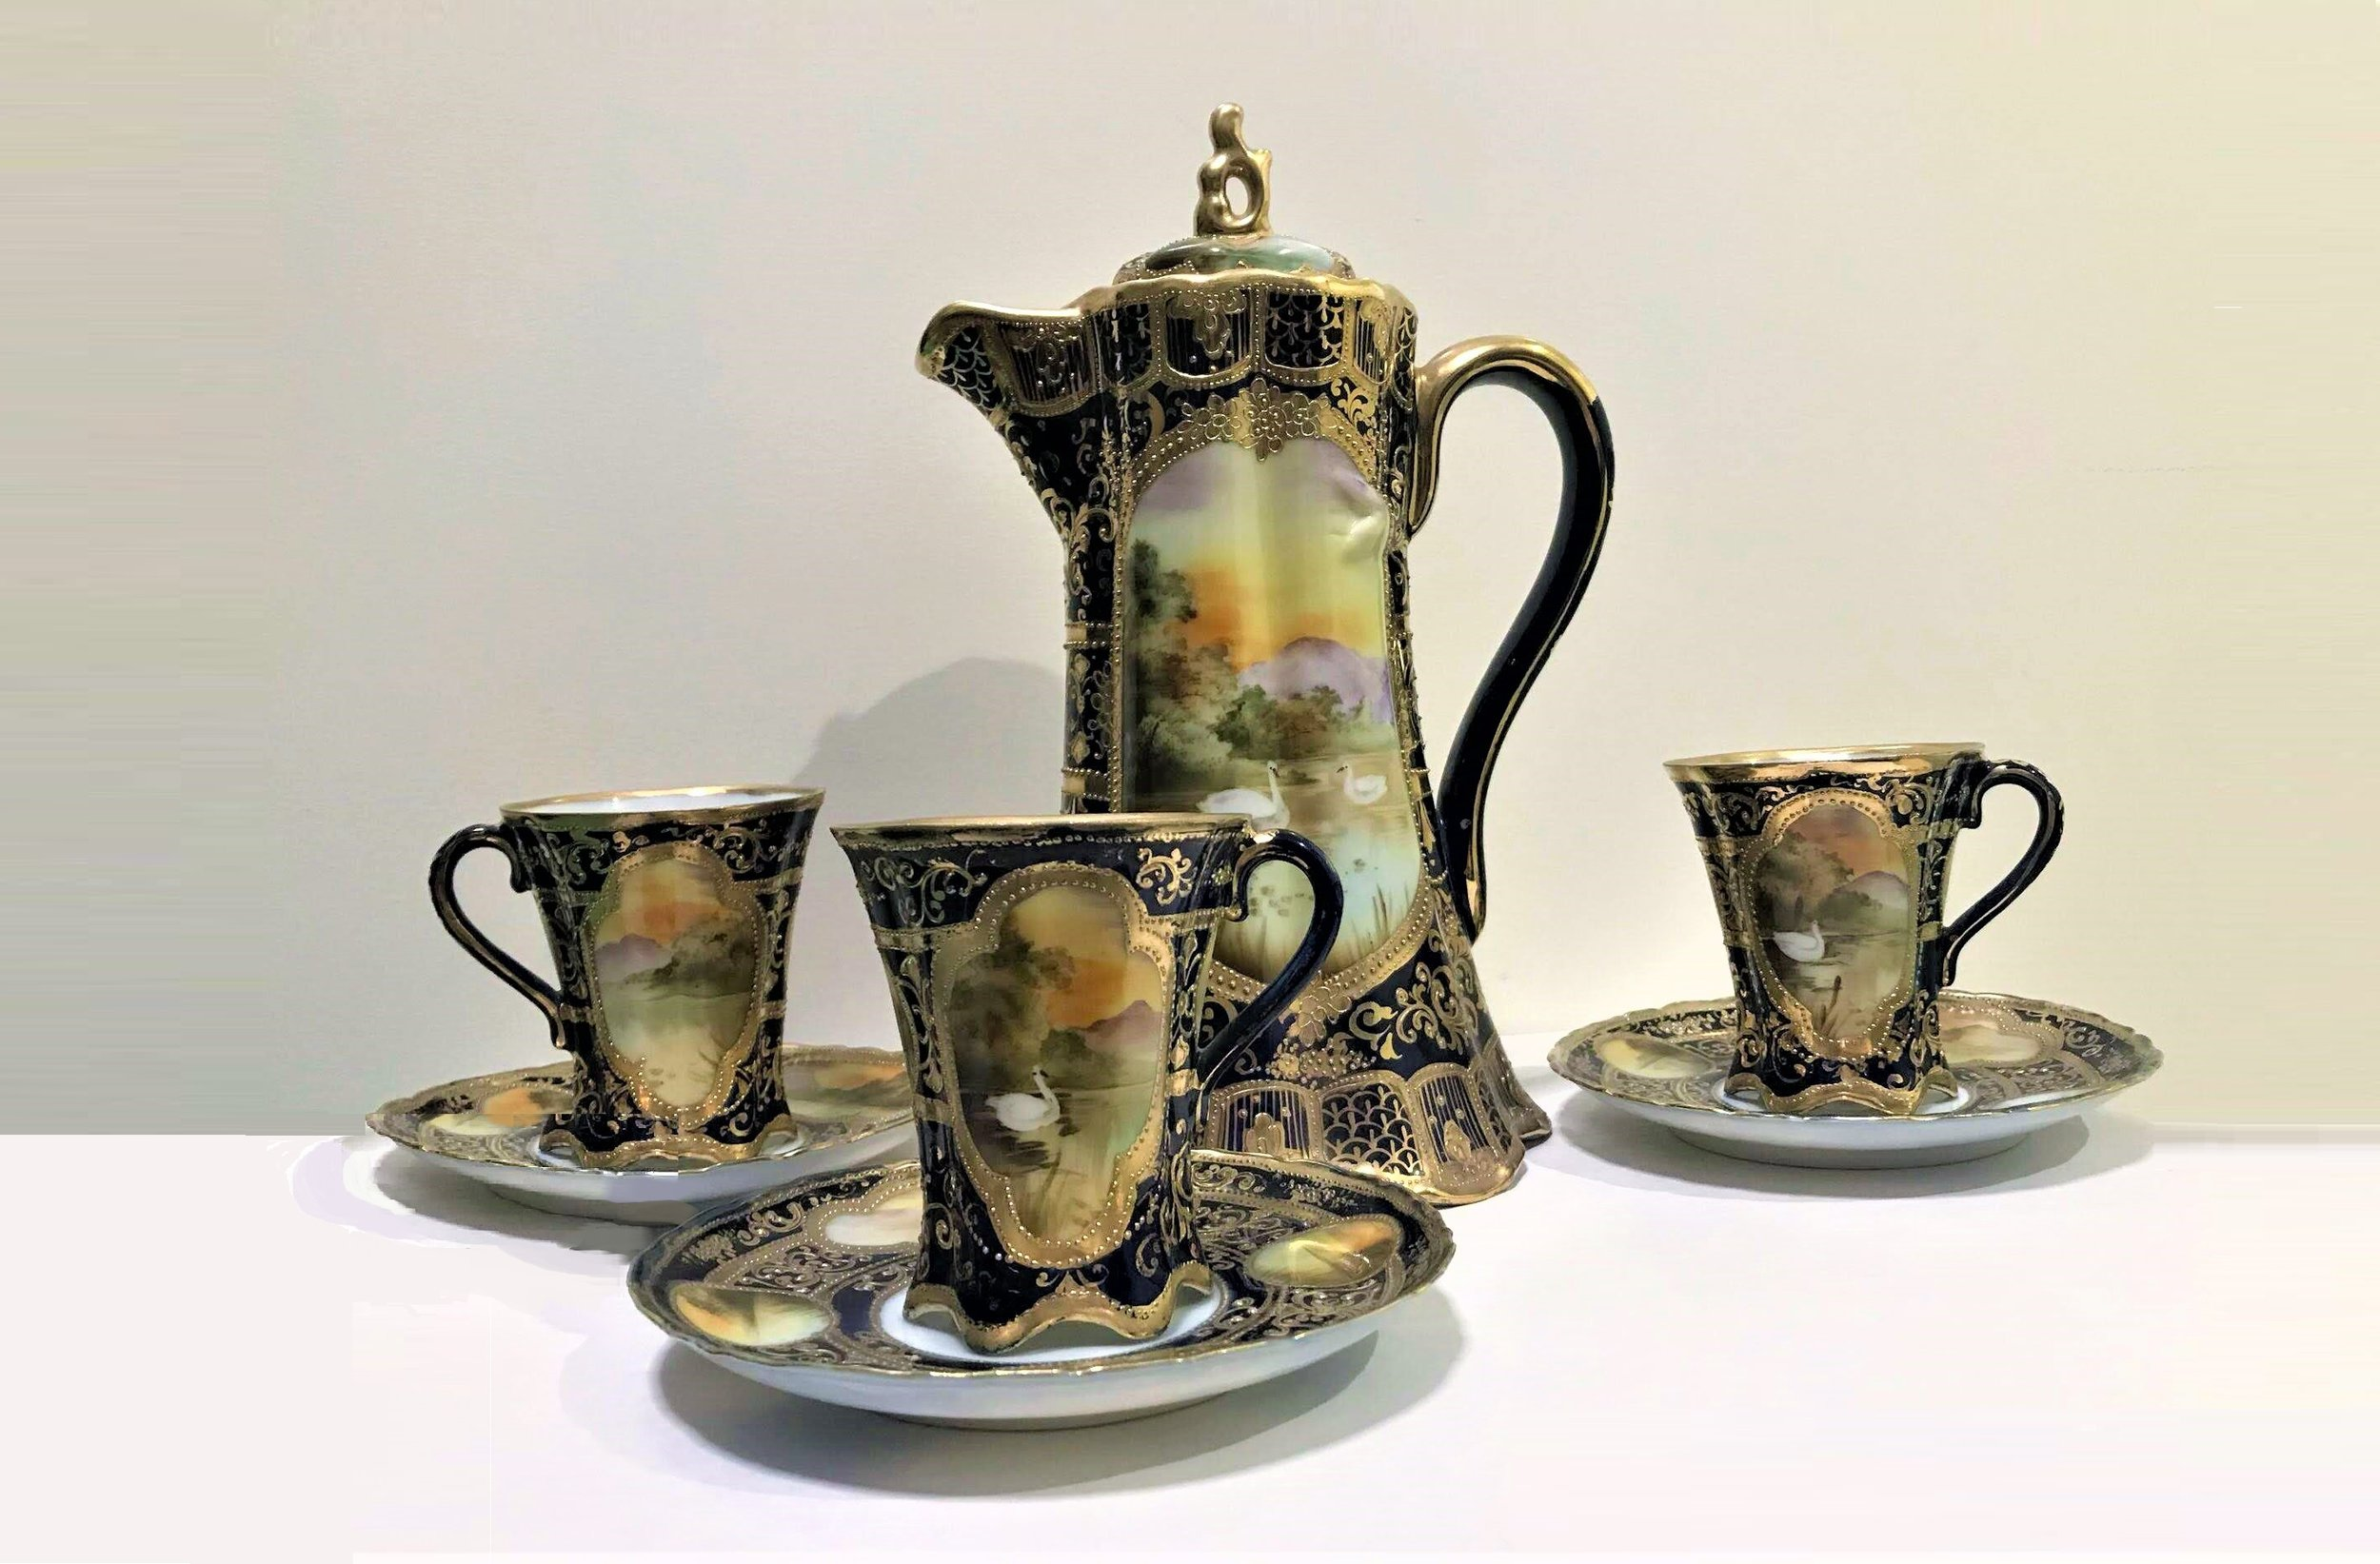 Hot Chocolate Set - Hand Painted pot with 3 cups and saucers.Priceless valueStarting bid $25